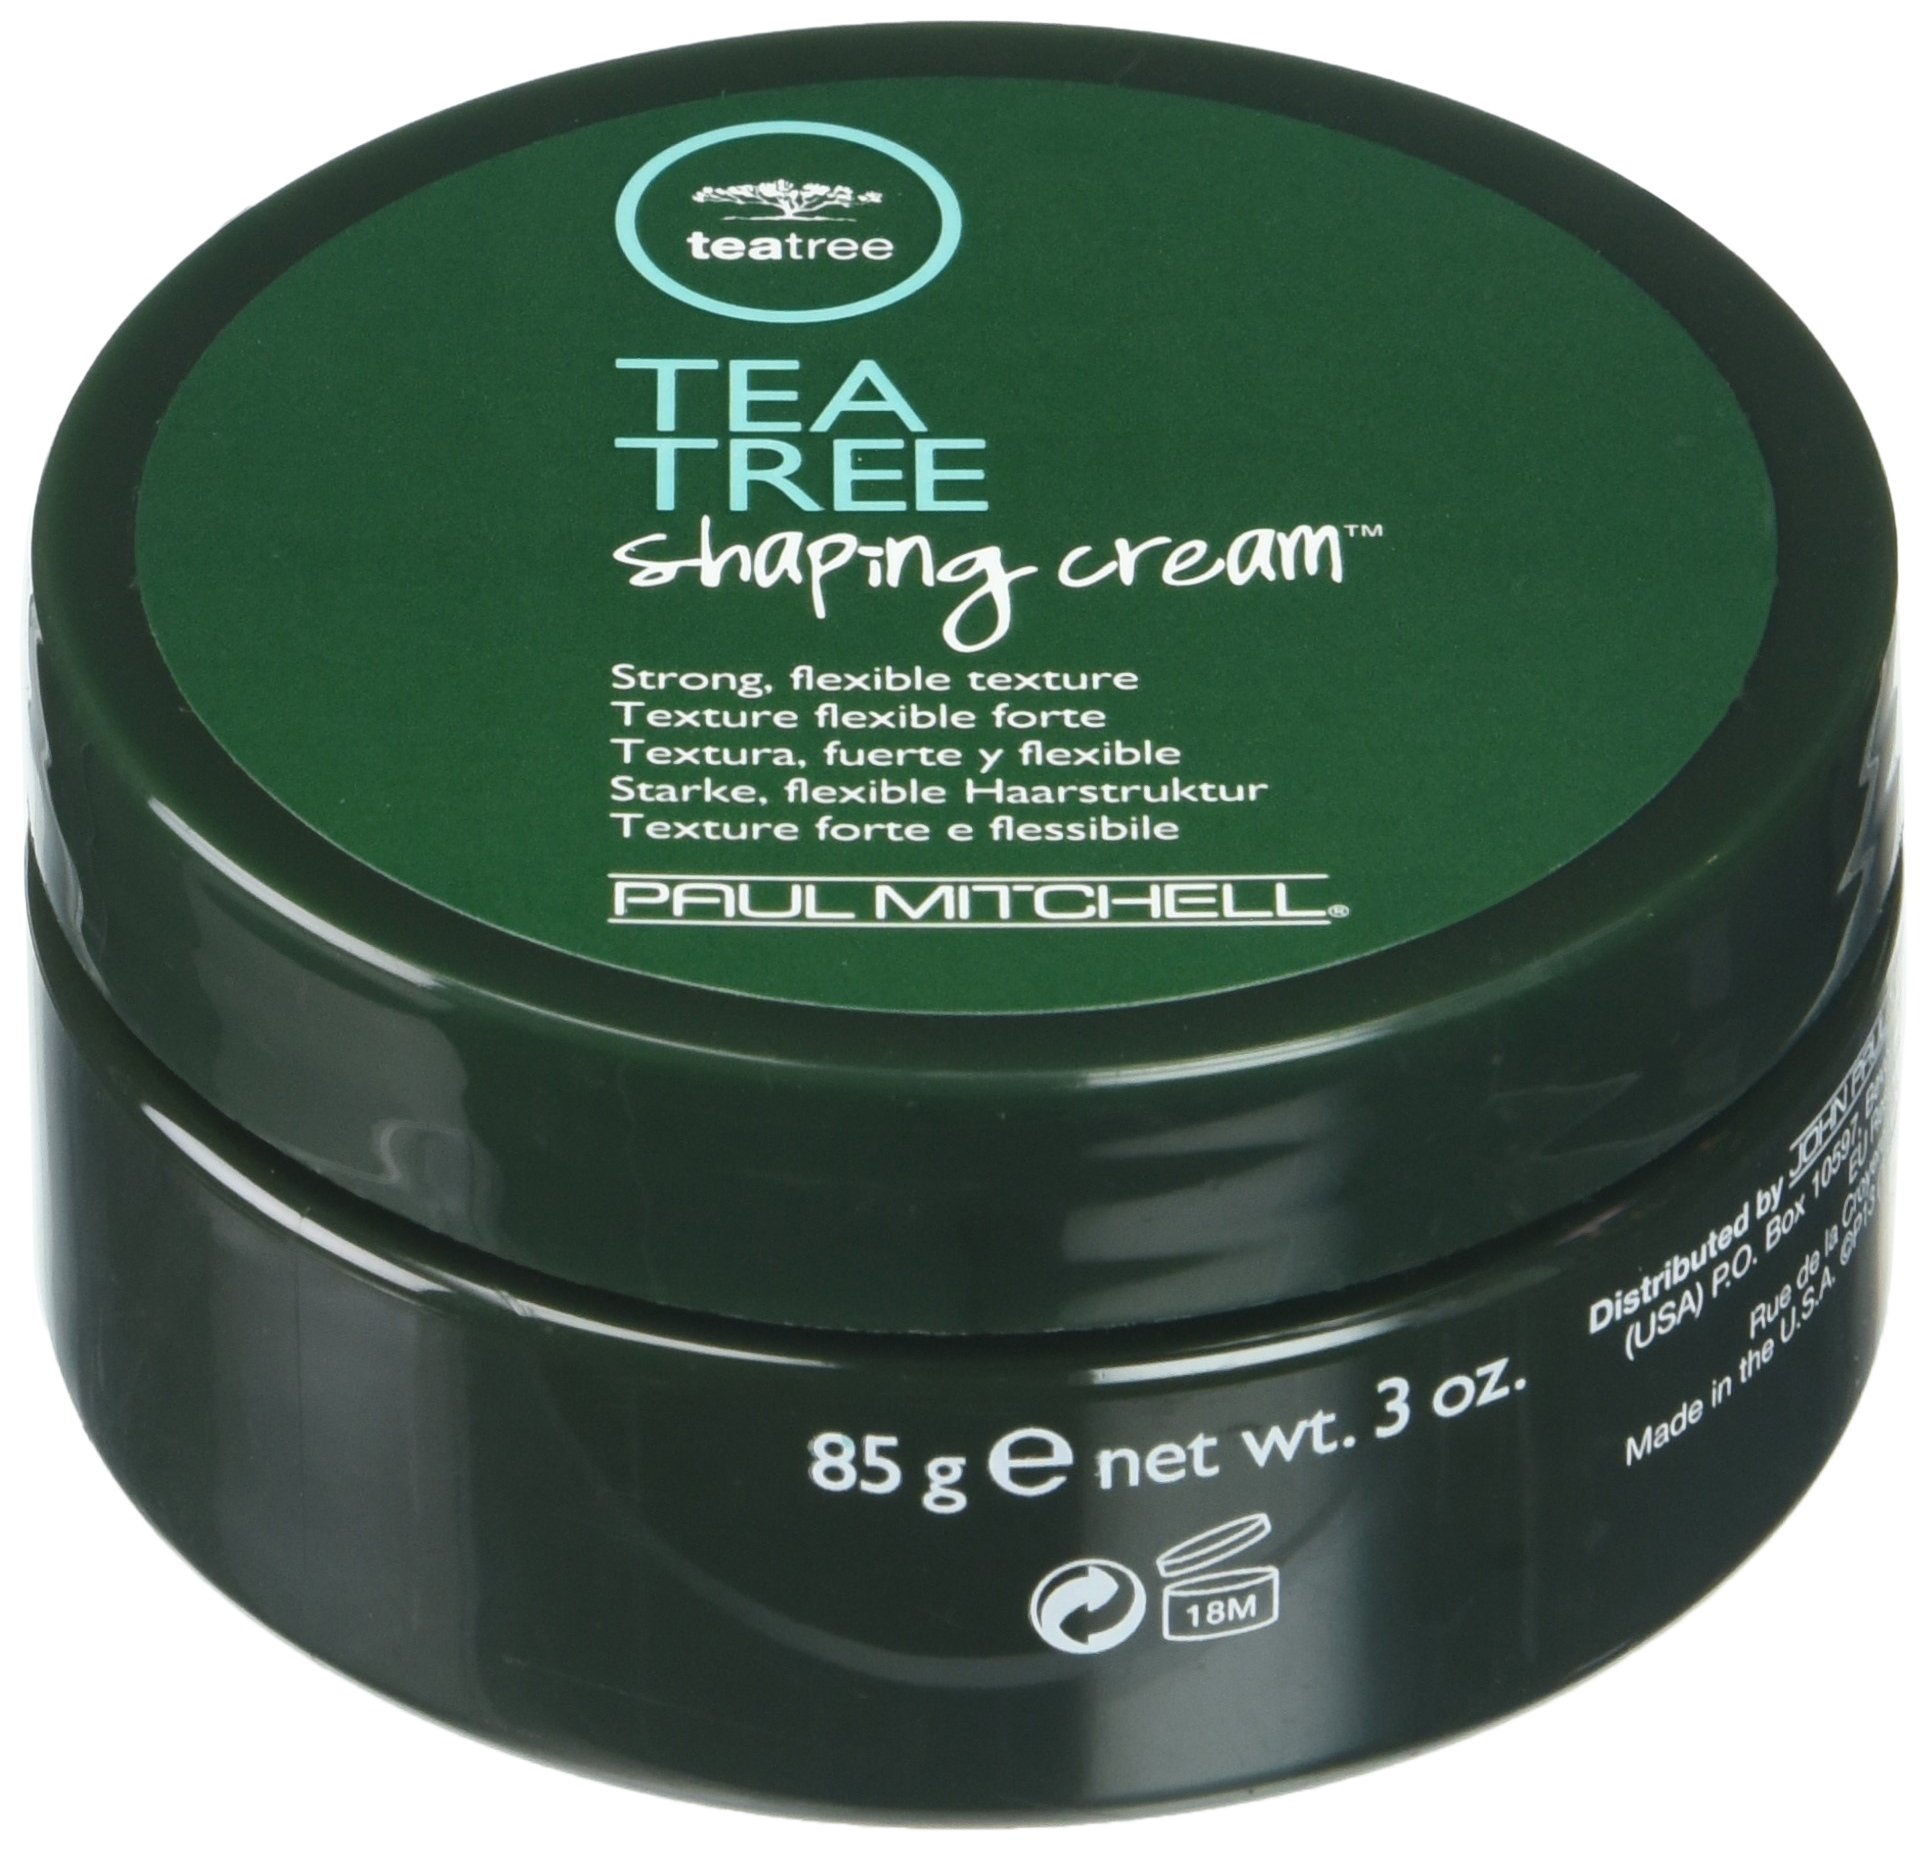 Tea Tree Shaping Cream 3oz Skin Ceuticals - Emollience (For Normal to Dry Skin) (Salon Size) -480ml/16oz